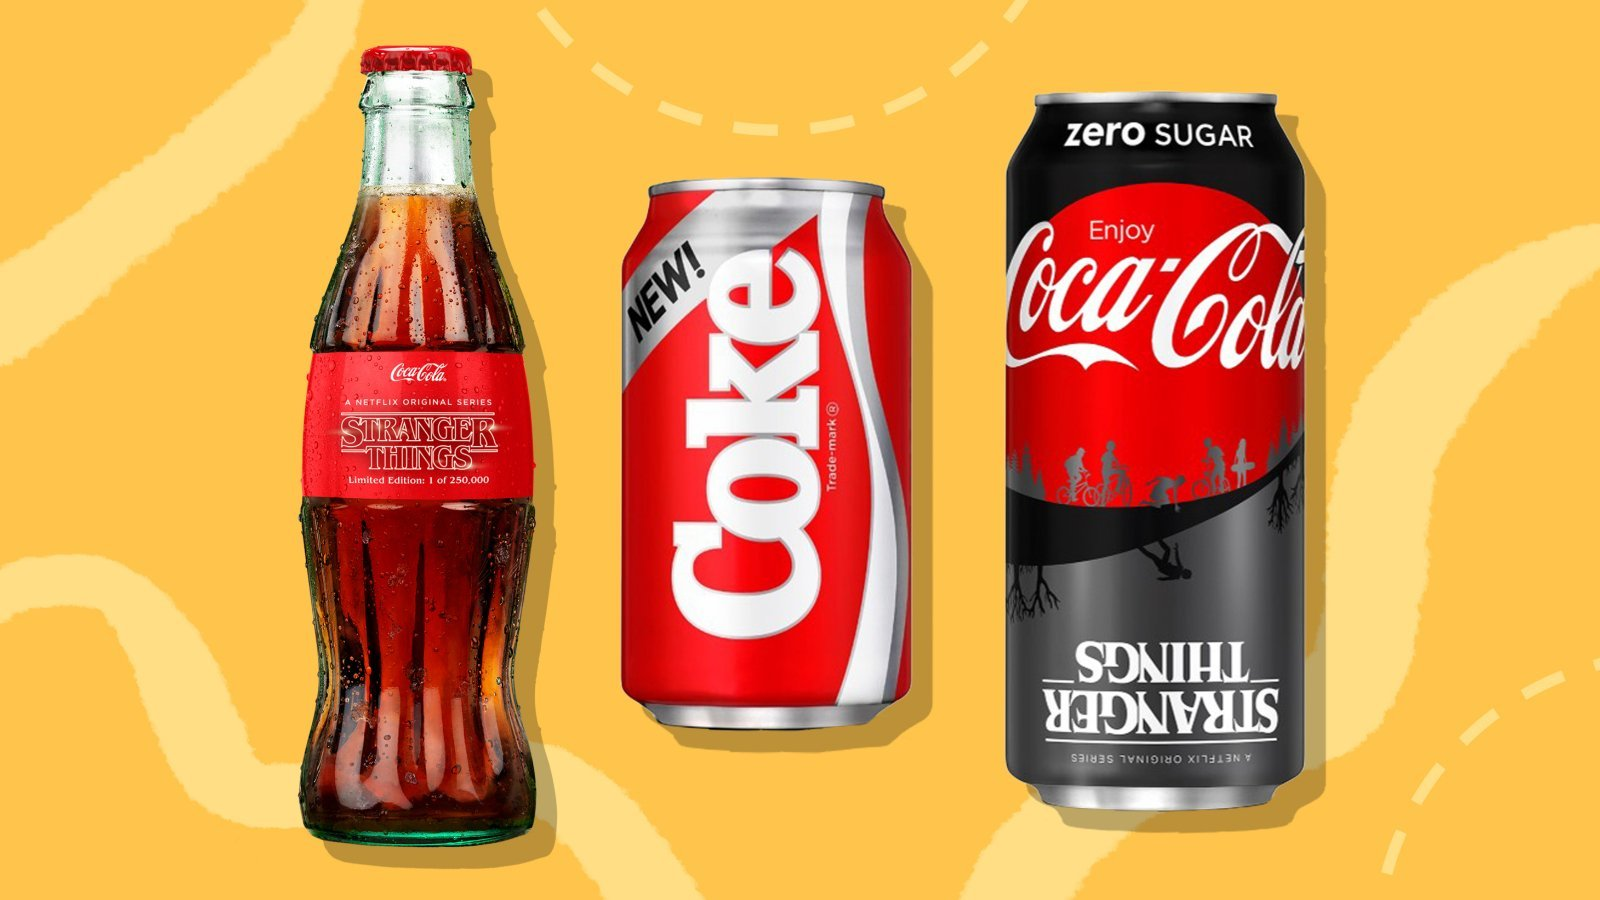 Customers will be able to get New Coke while supplies last starting May 23. (Credit: Coca-Cola via CNN Wire)